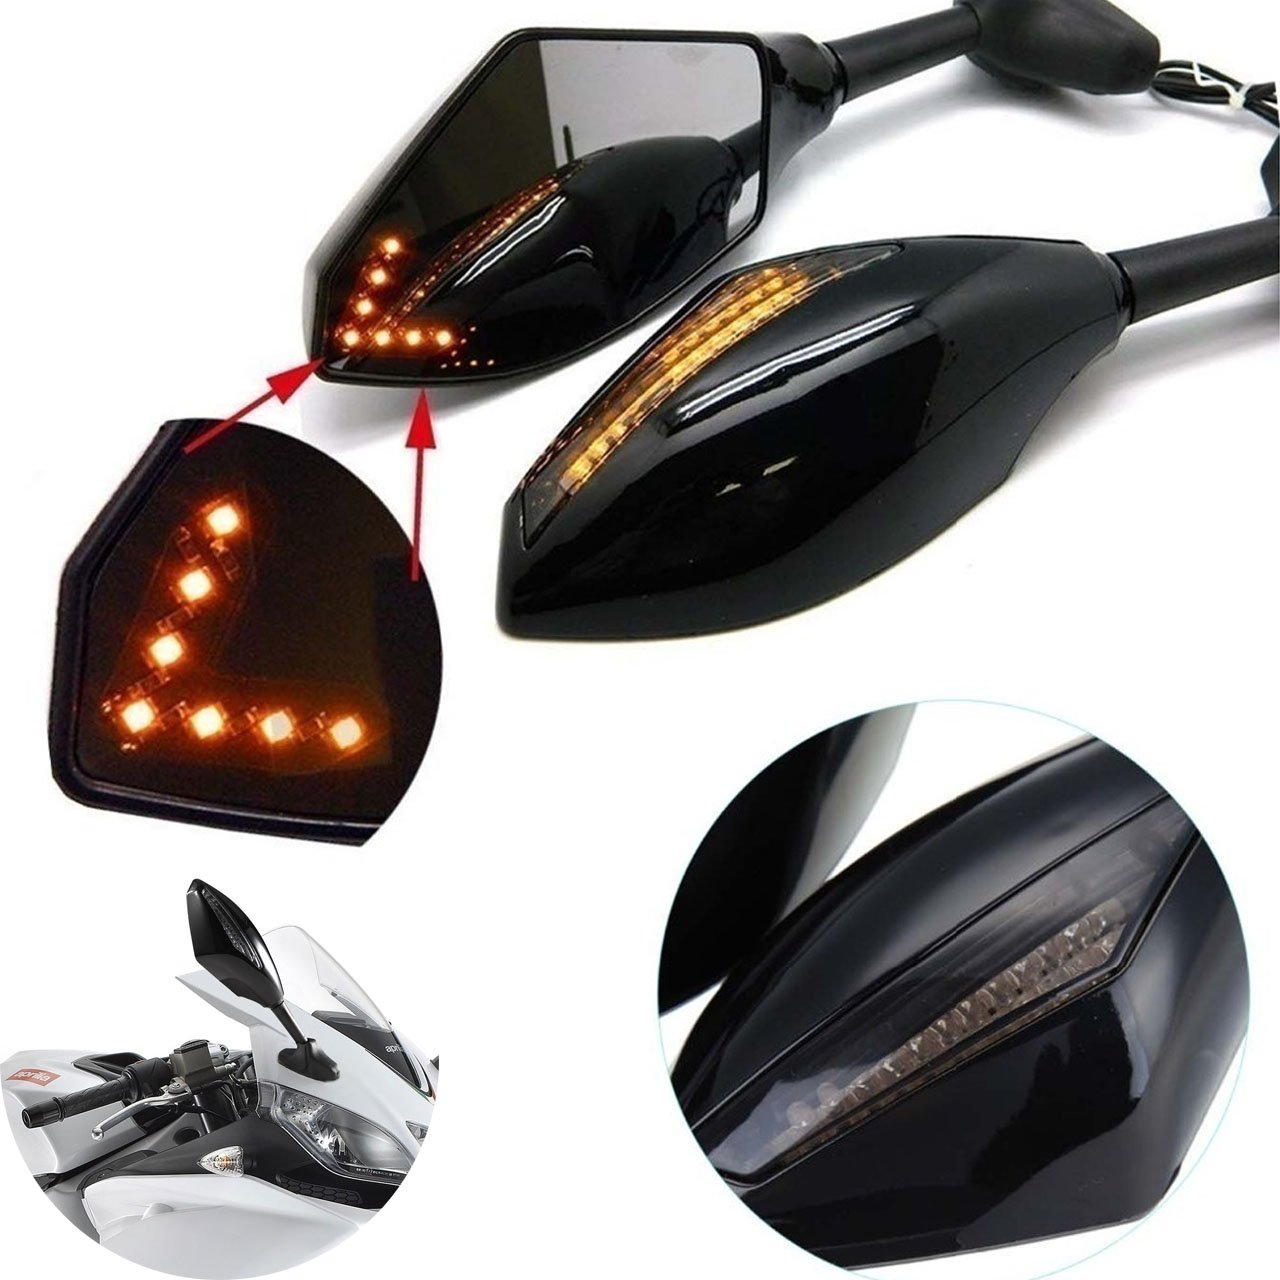 KaTur Motorcycle Led Turn Signal Integrated Indicator Front & Rear Rearview Mirrors for Racing Sport Bike (Smooth Black+Smoke Lens)